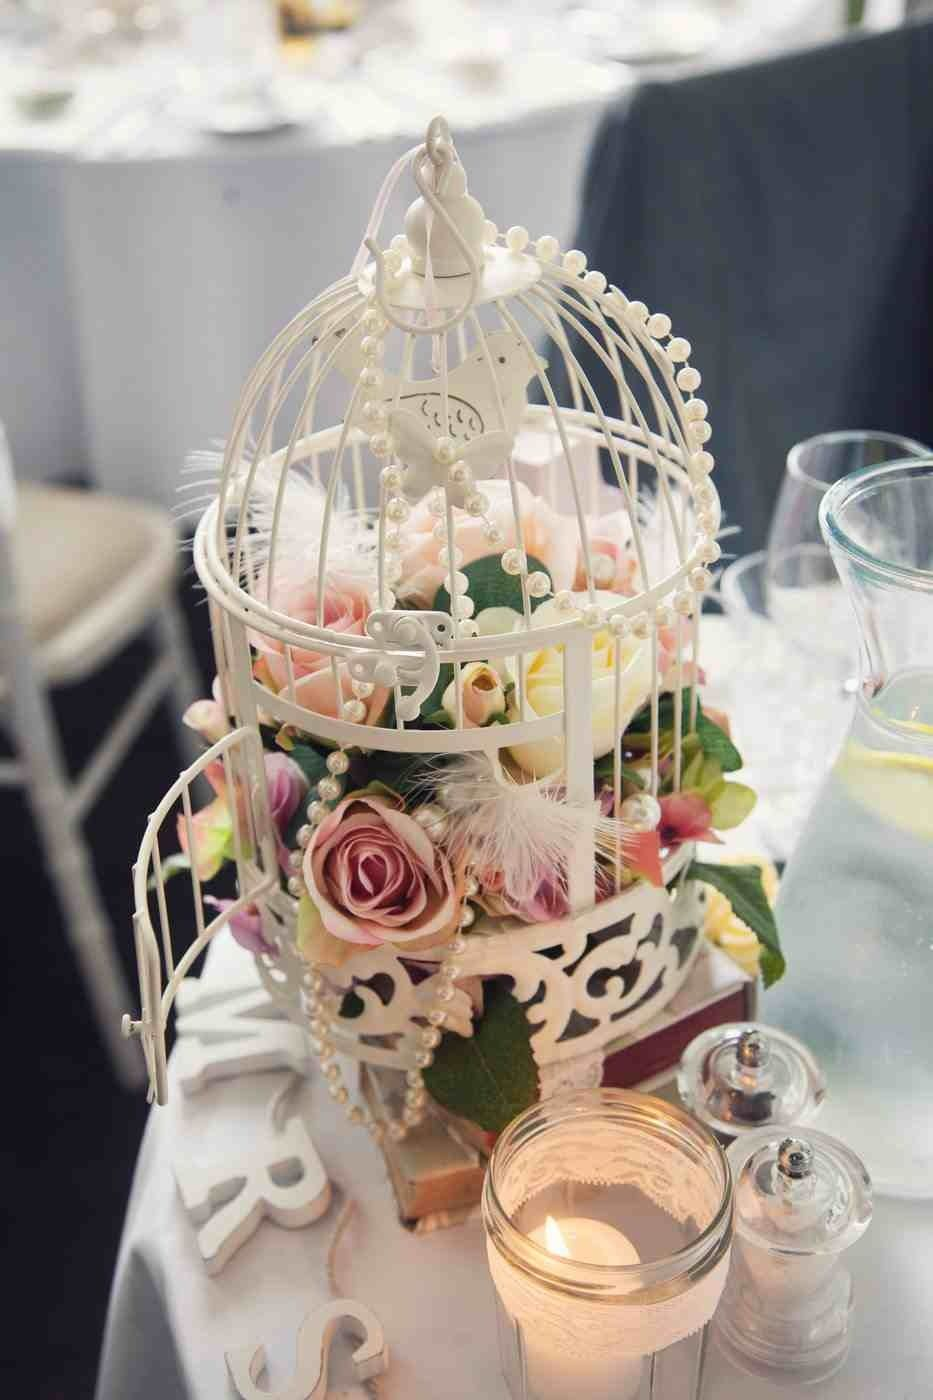 Wedding Table Shabby Chic Wedding Table Decorations birdcage table decoration wedding shabby chic dusky pink sage green artificial flowers pearls feathers